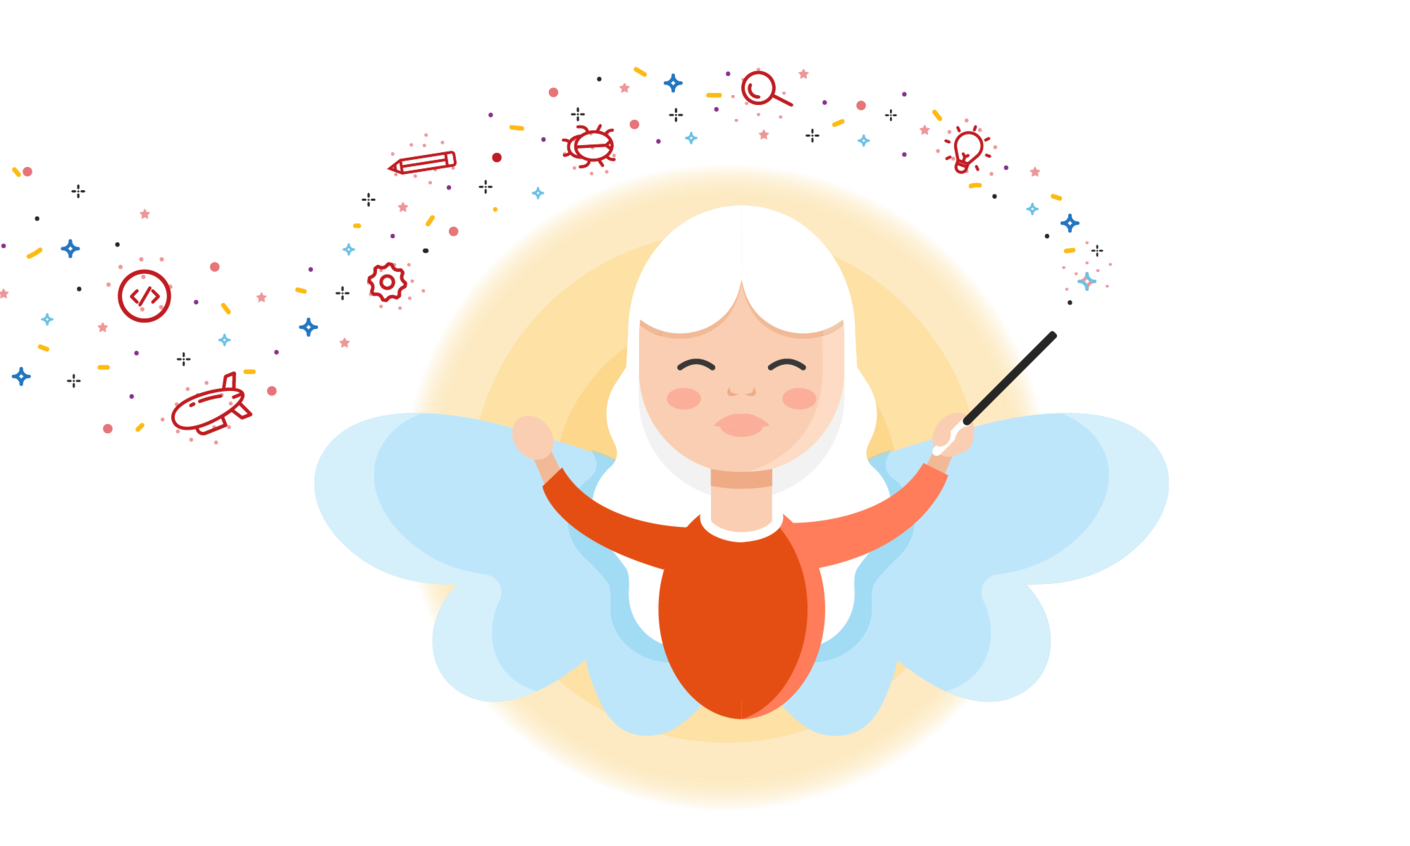 The QA Fairy Godmother